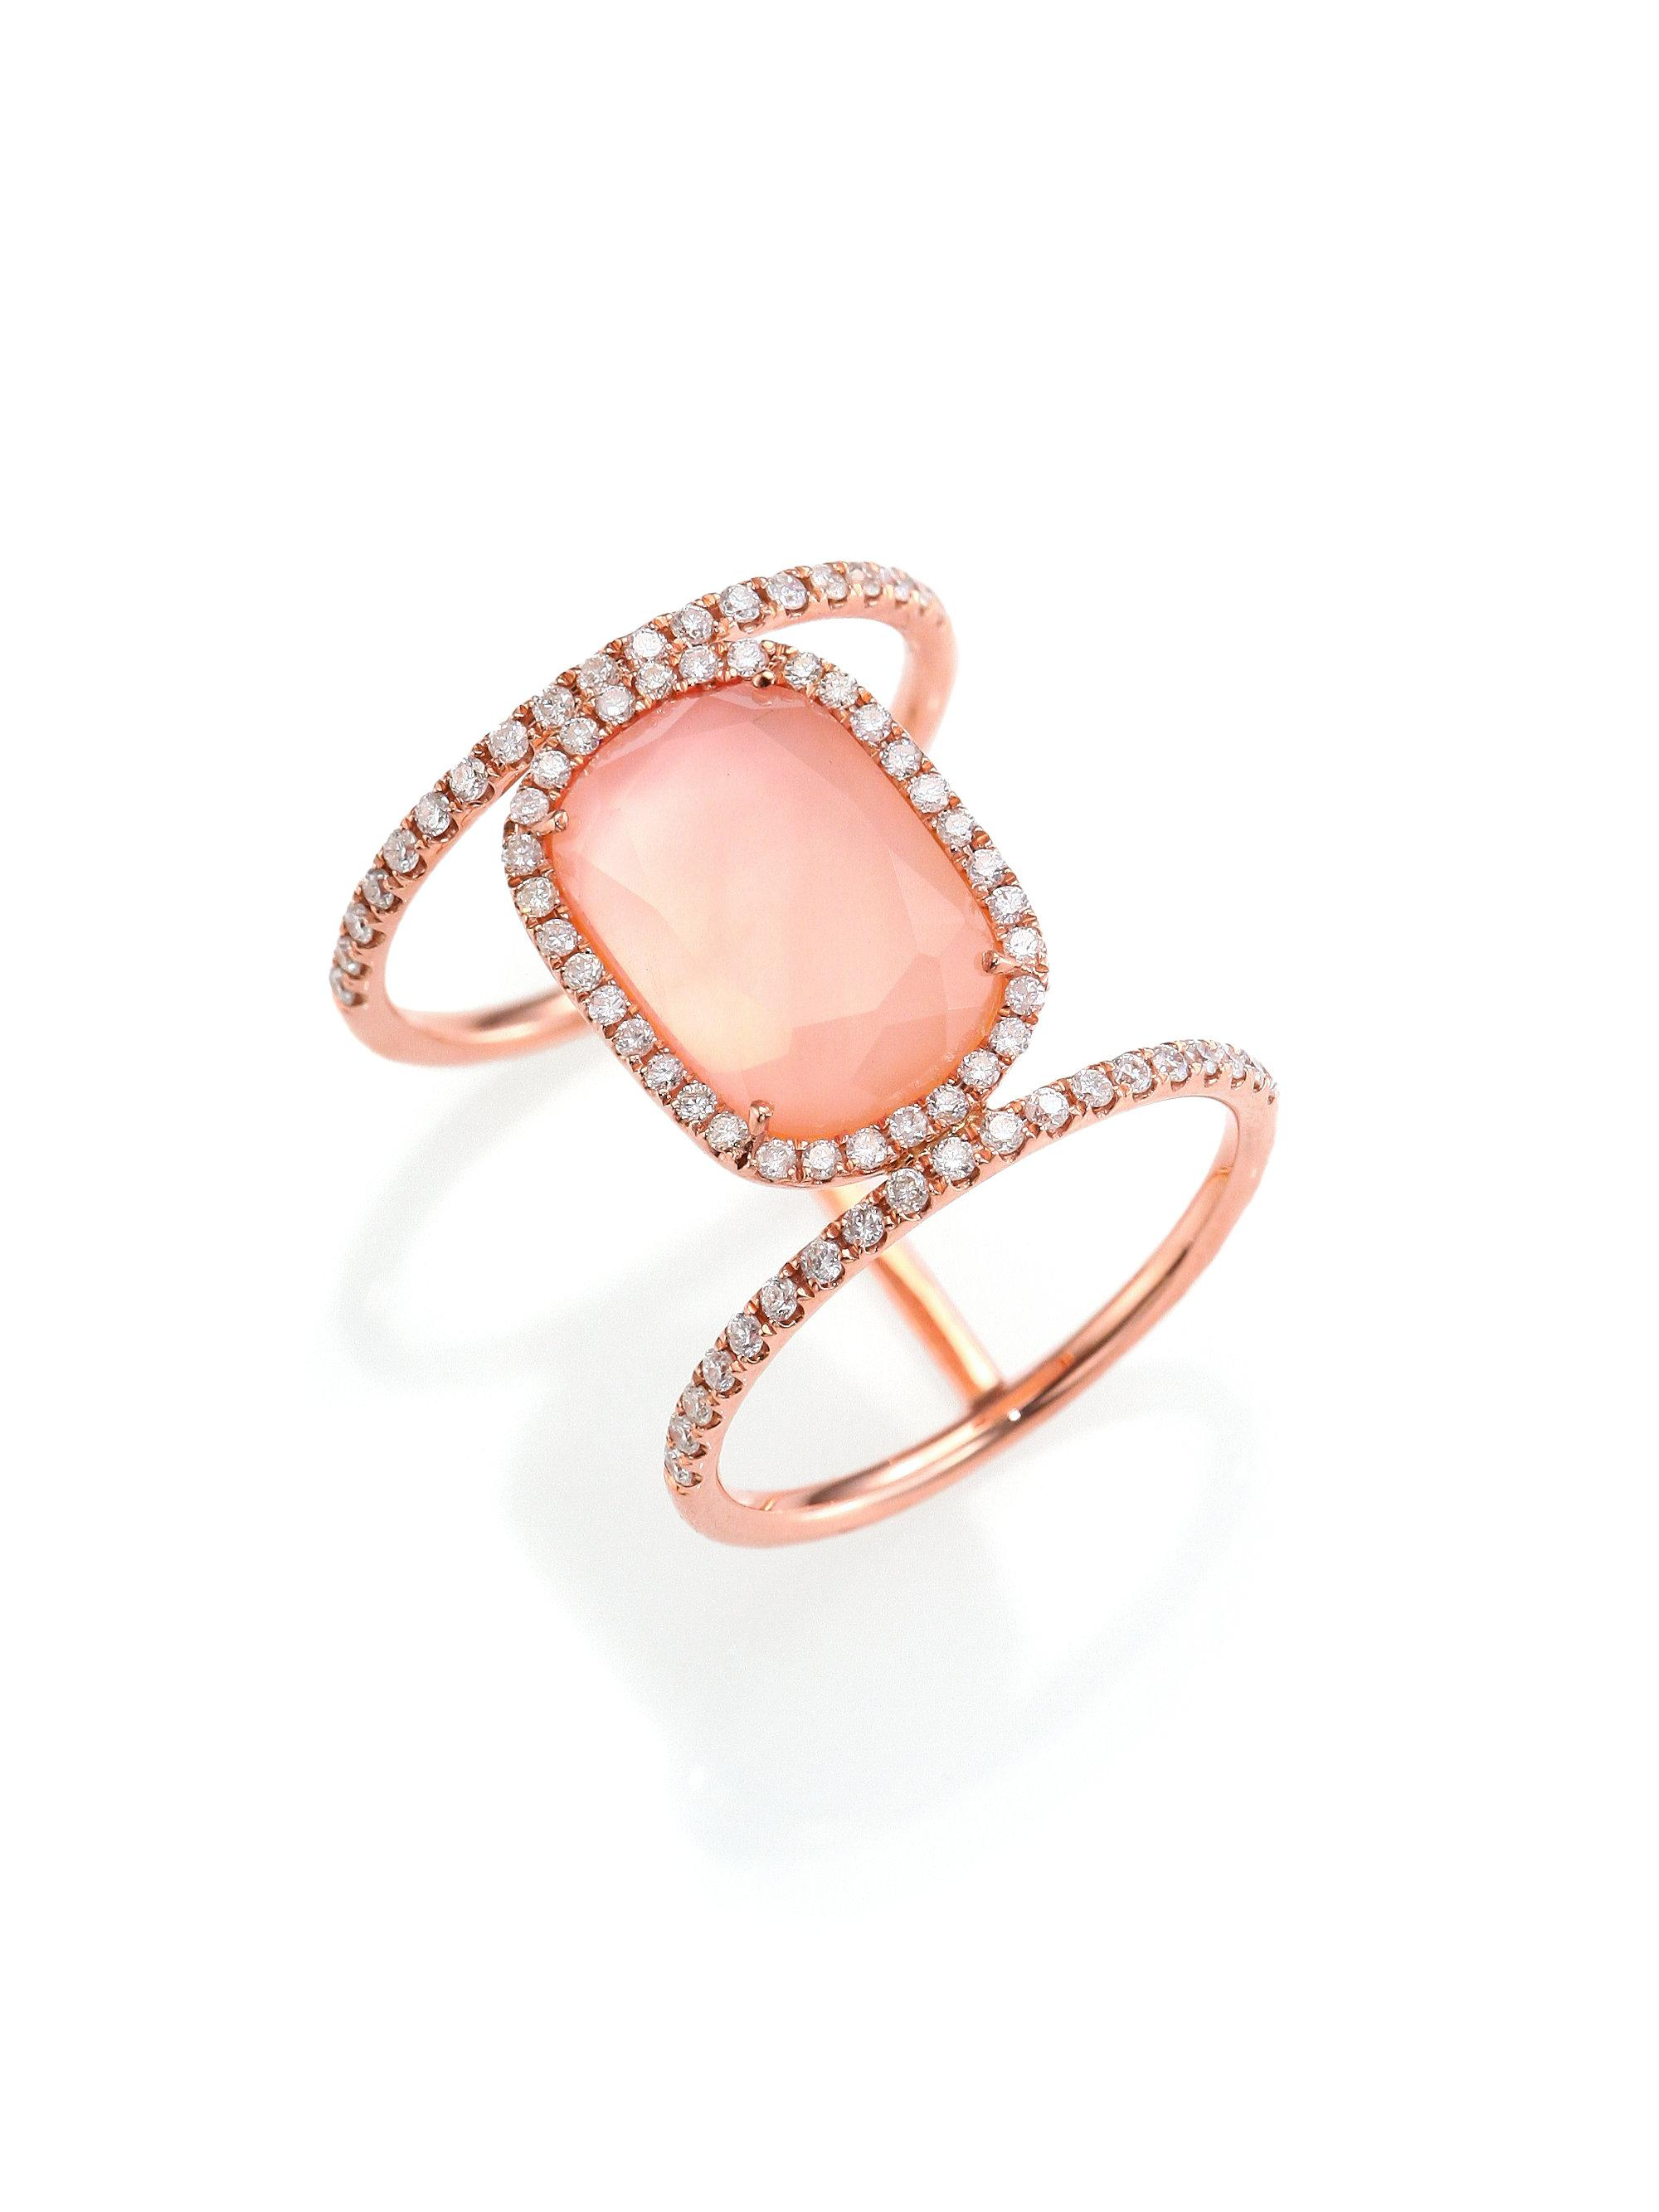 quartz eliise frost rings maar side jewellery thin love fine products by go minimalist rose q